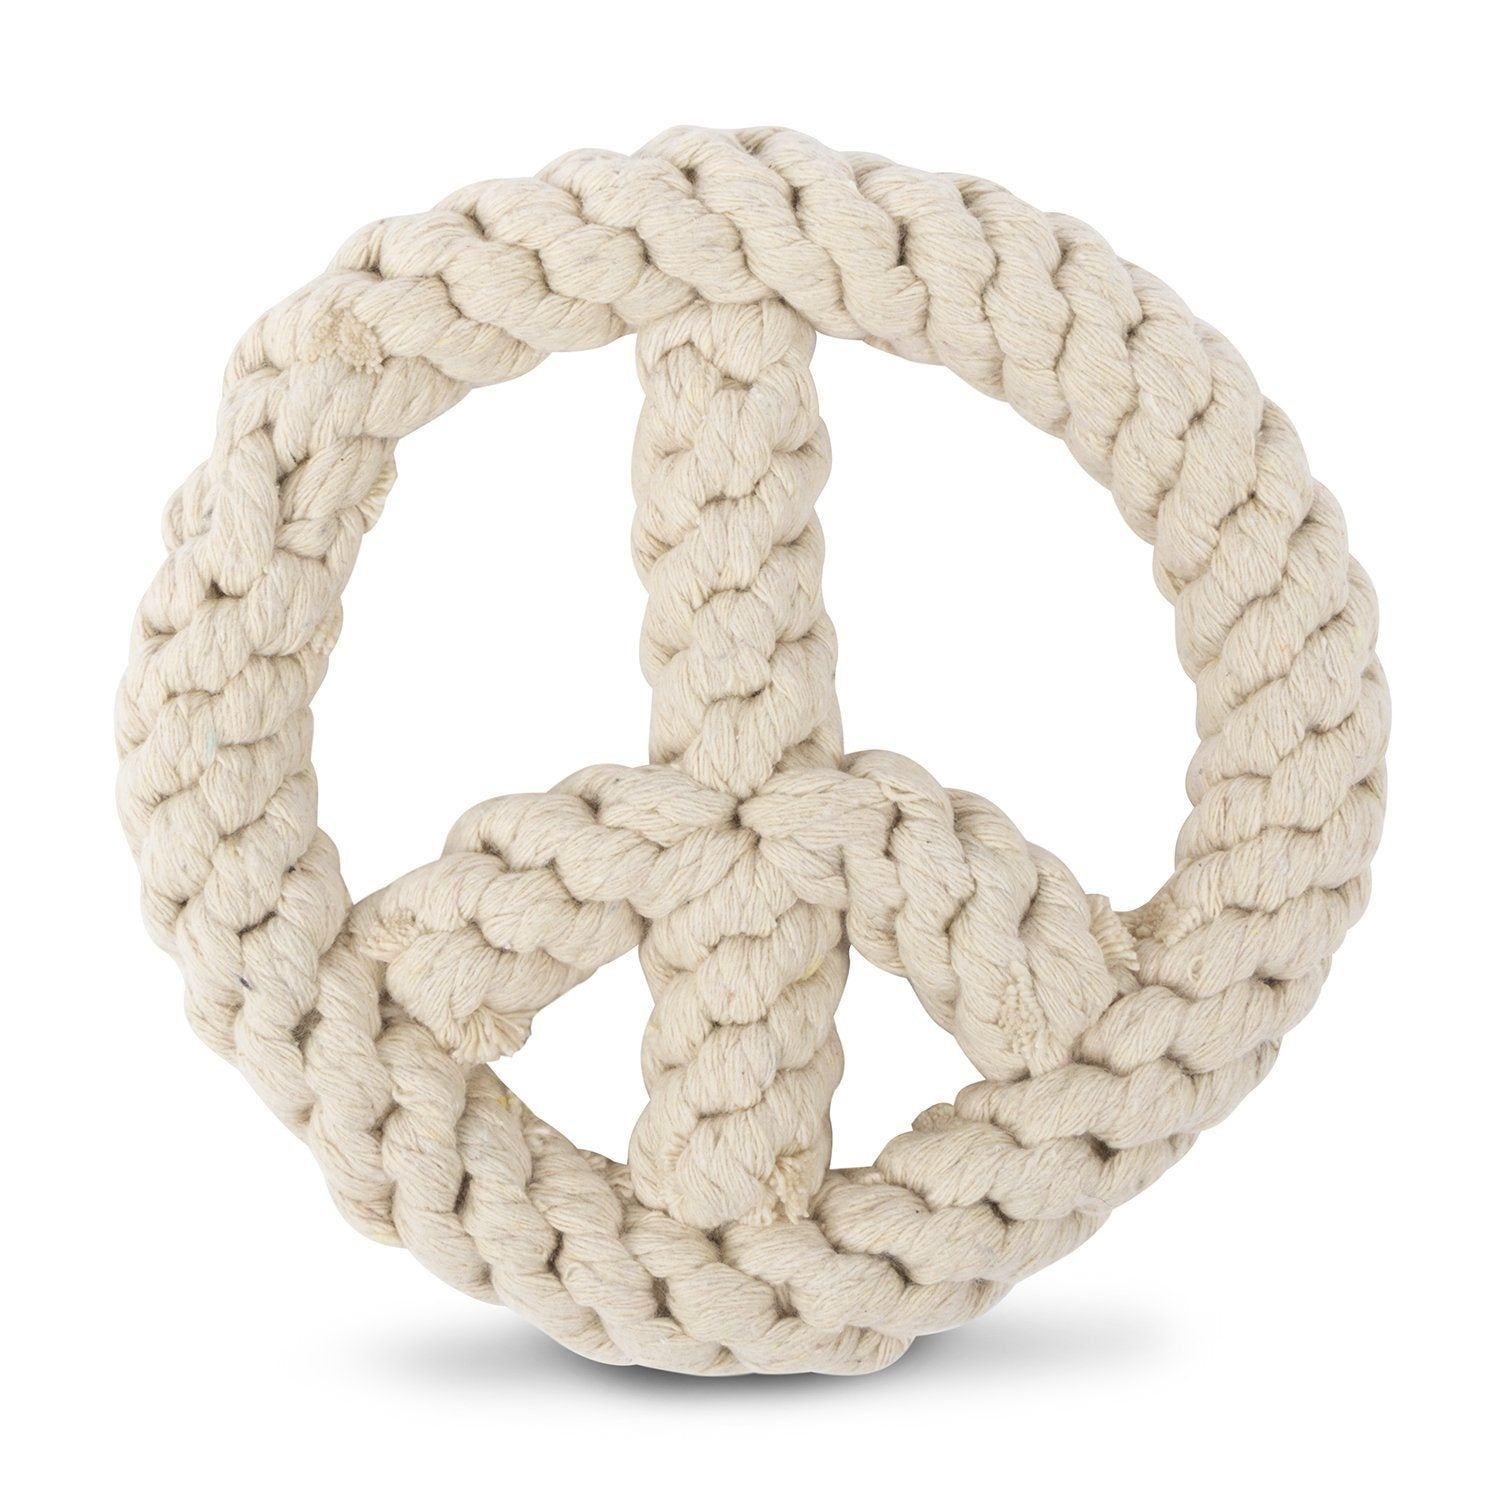 Rope Toy - Peace On Earth Rope Dog Toy